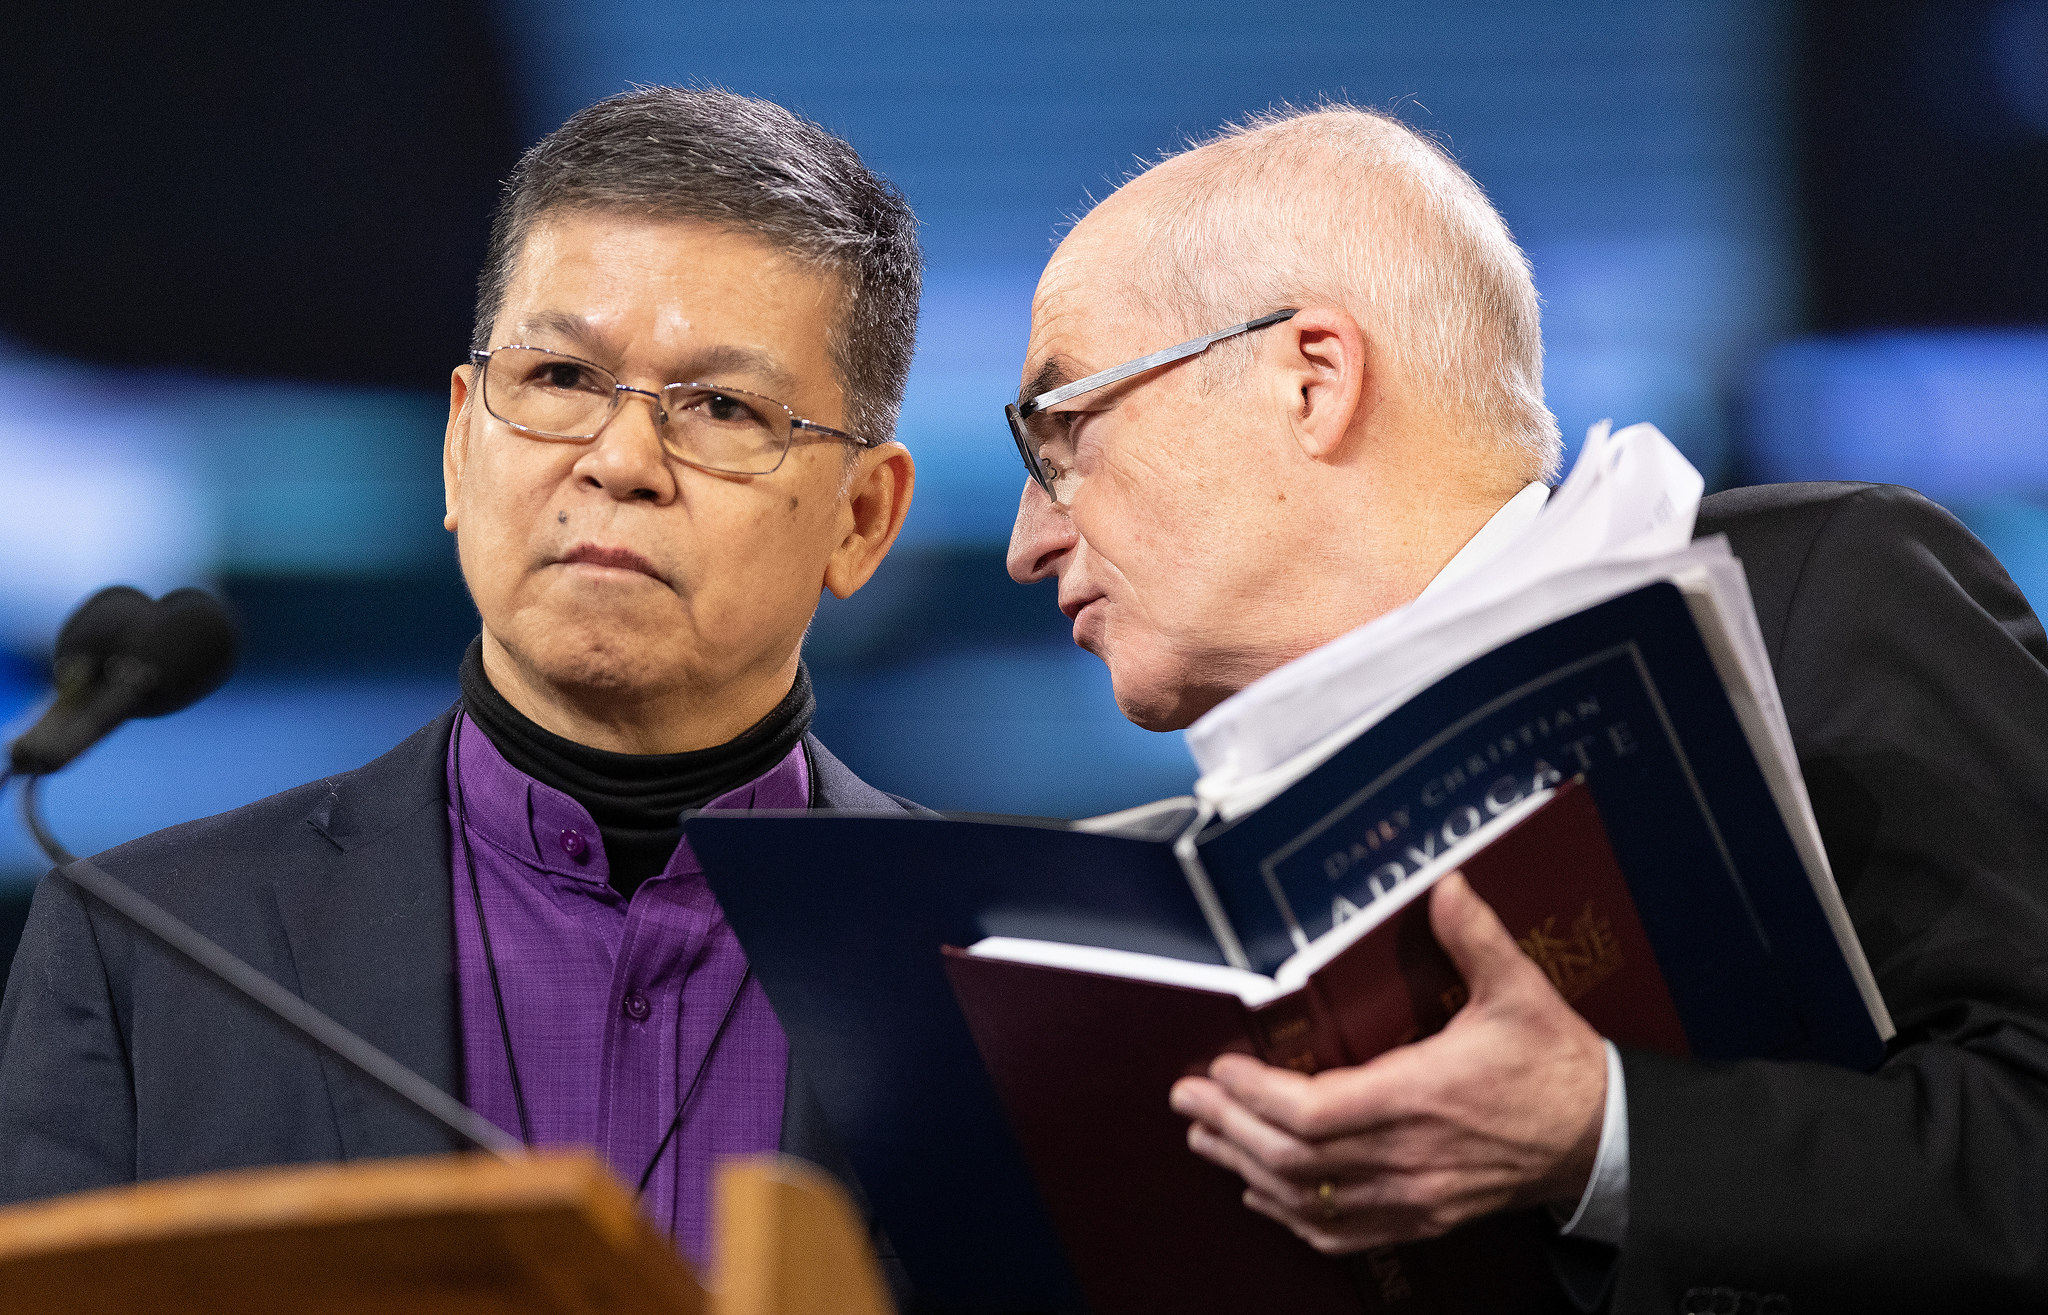 Bishops Ciriaco Q. Francisco (left) and Patrick Streiff confer at the podium during the 2019 United Methodist General Conference in St. Louis. They both serve on the Standing Committee on Central Conference Matters. Photo by Mike DuBose, UMNS.